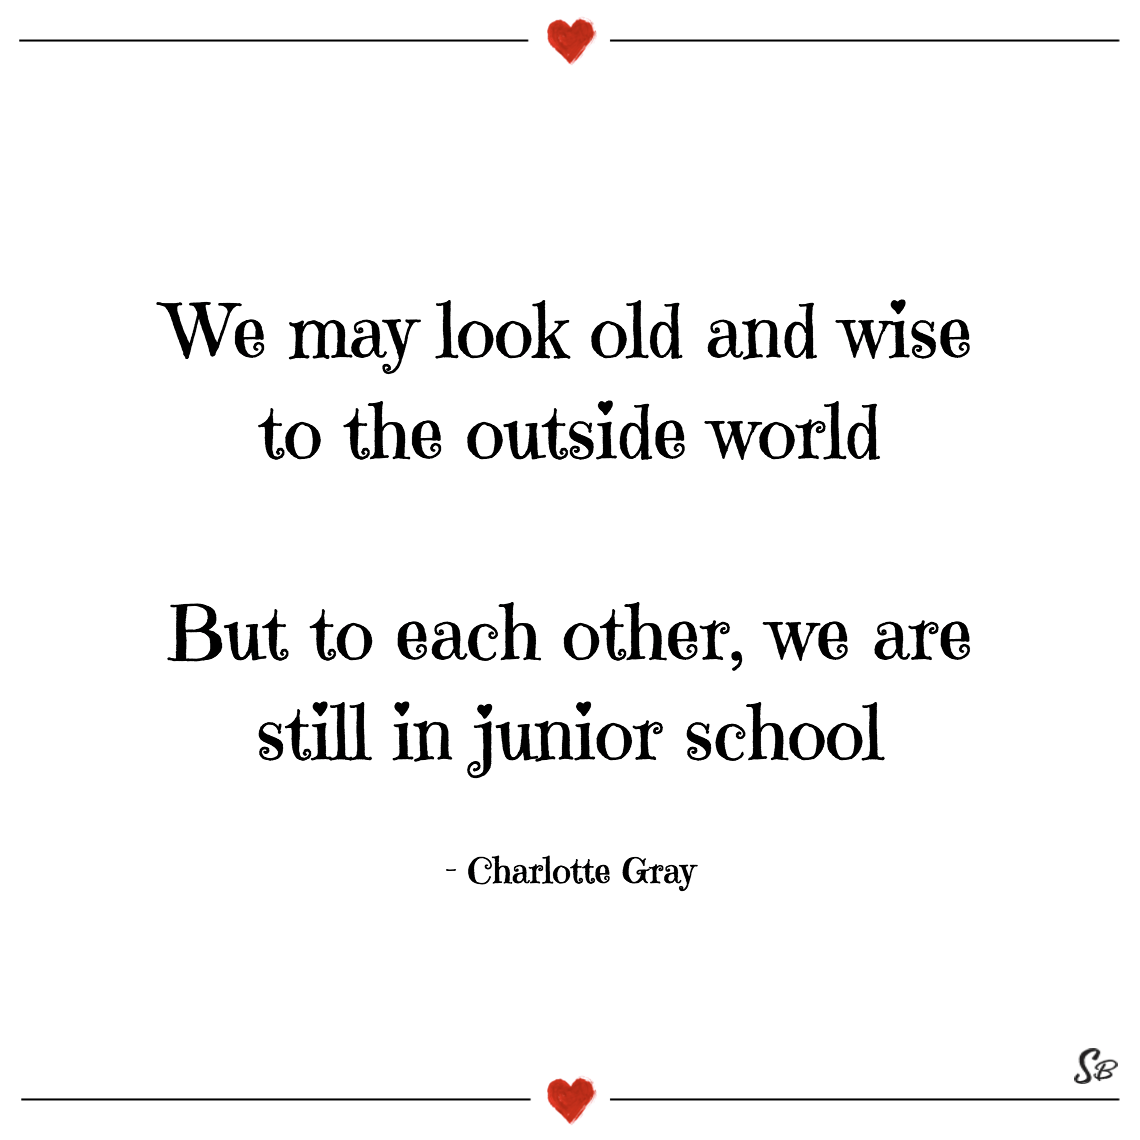 We may look old and wise to the outside world but to each other, we are still in junior school charlotte gray